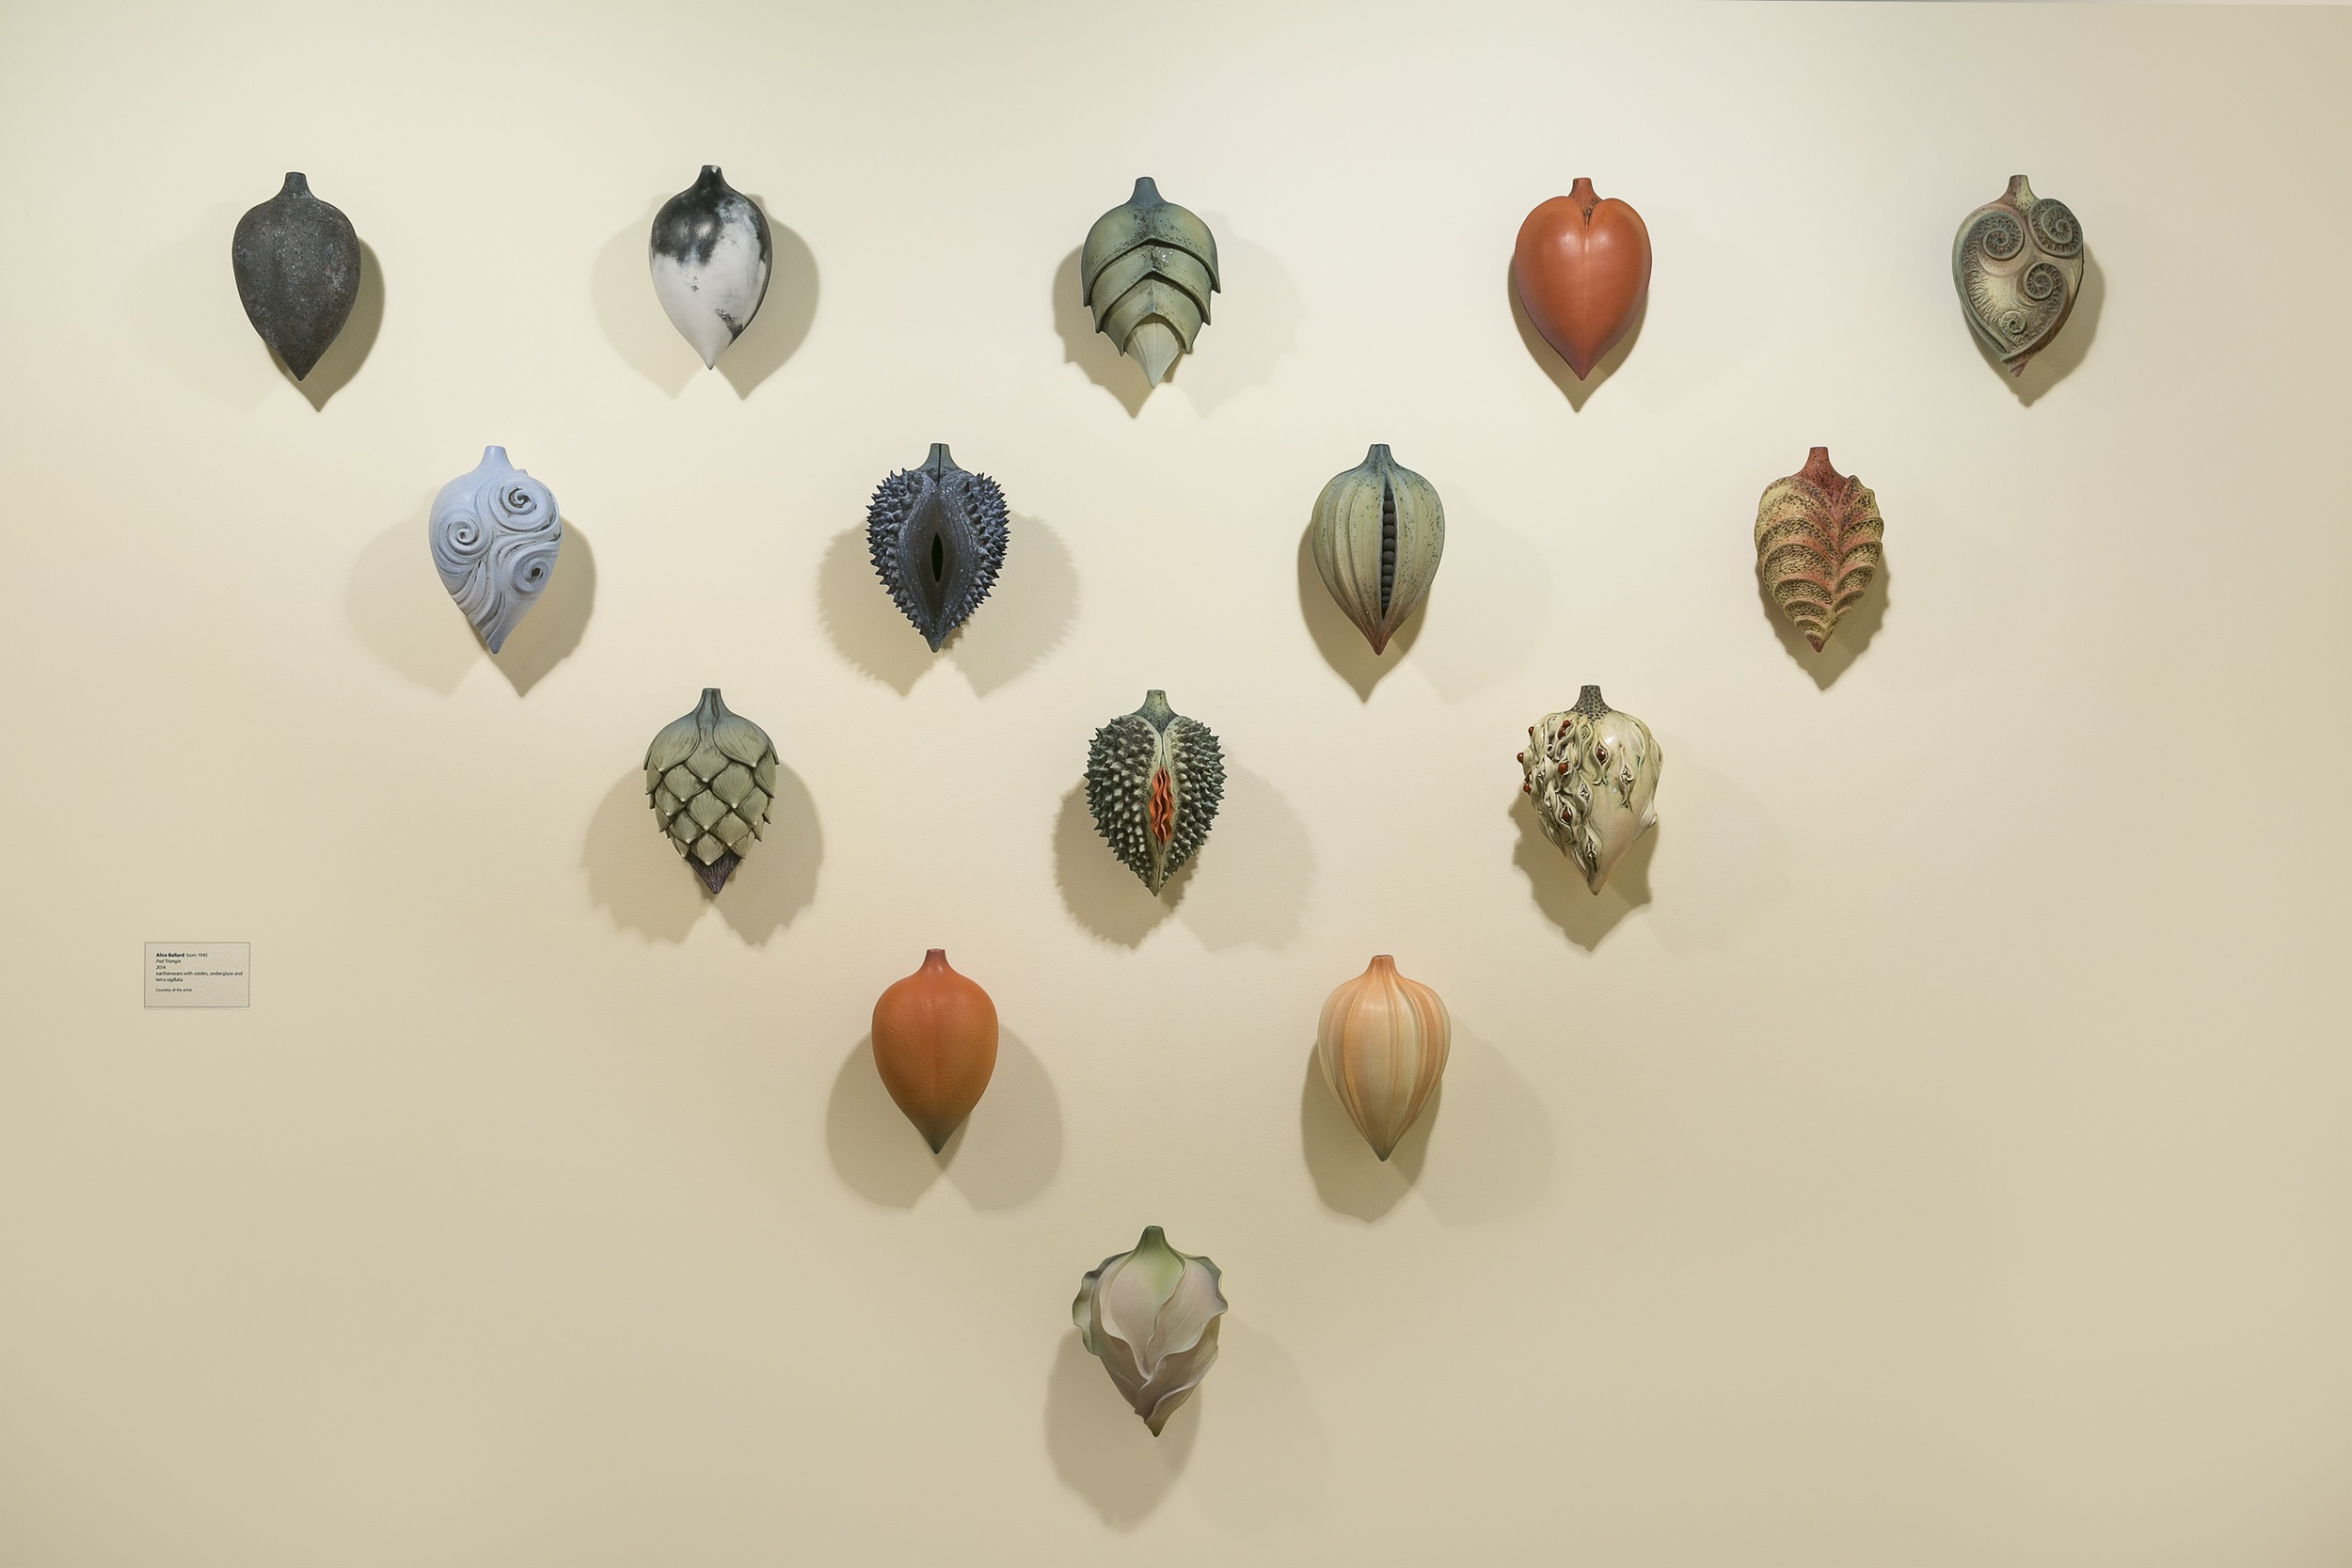 Alice Ballard's 15 Pod Triangle (speaking of pod-casts) currently on display at her solo show at the Greenville County Museum of Art, Greenville, SC through January 4th, 2015.